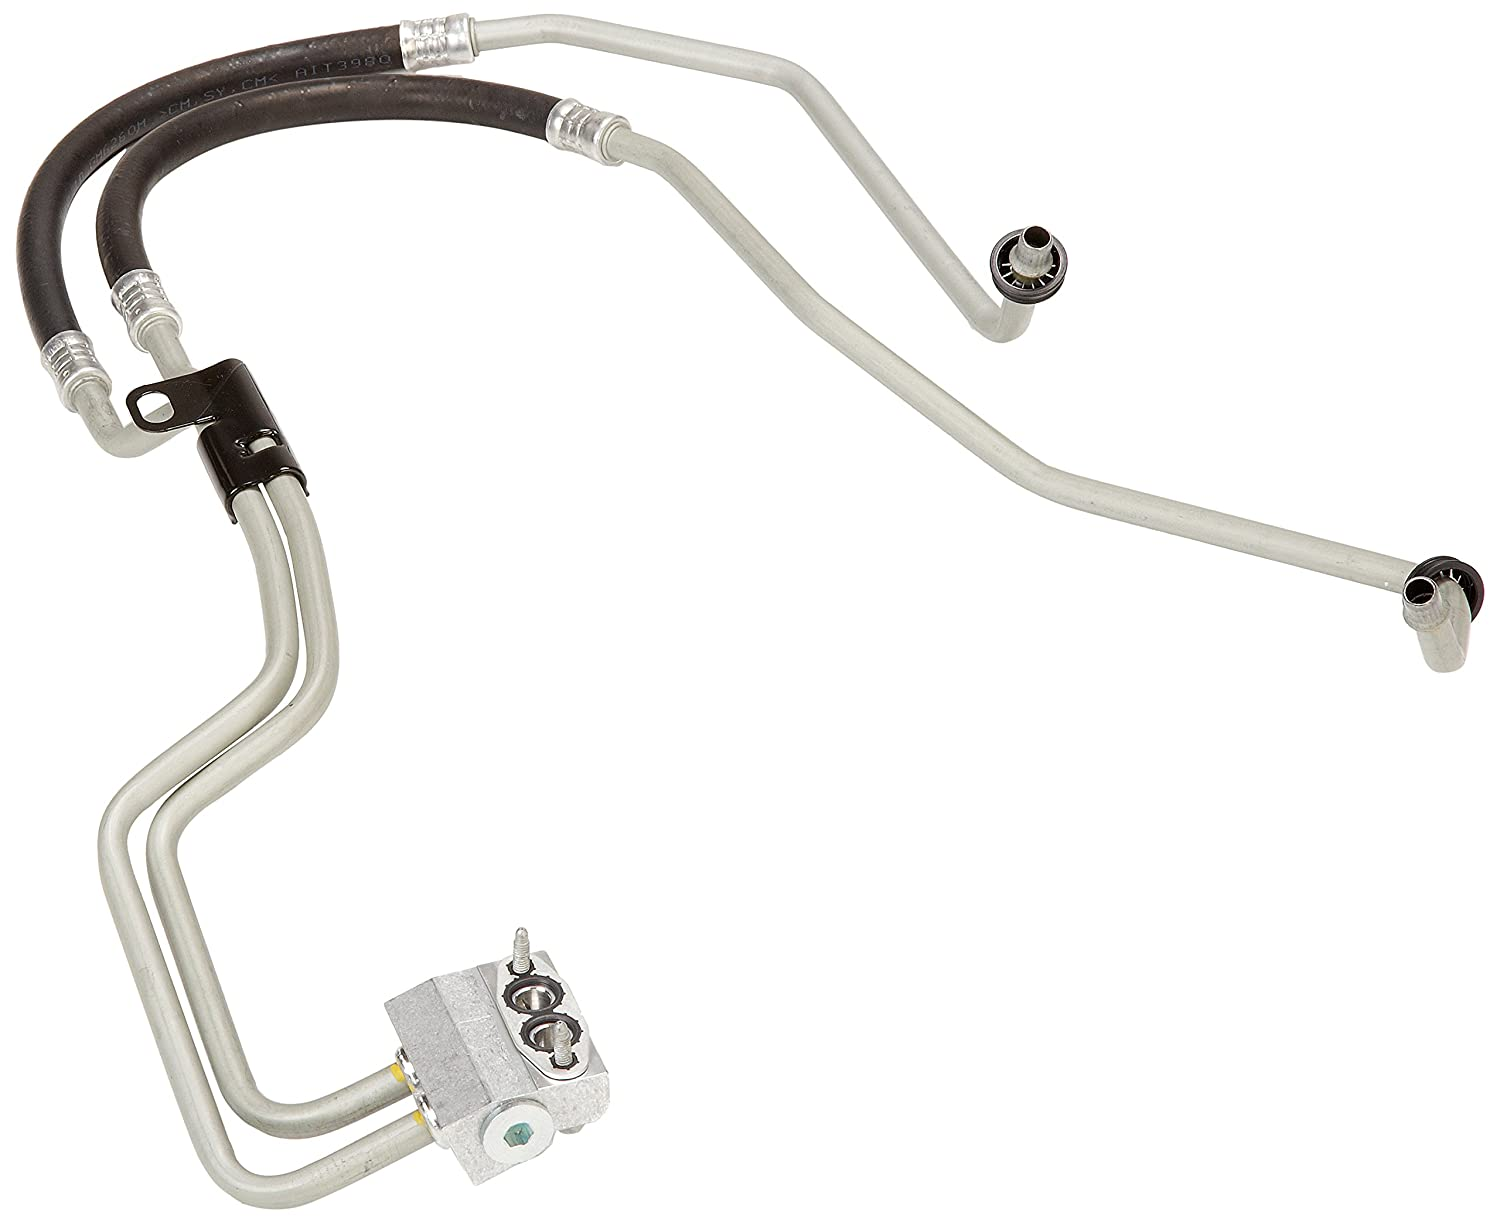 ACDelco 20828695 GM Original Equipment Engine Oil Cooler Hose Kit with Bracket, Gasket, and Bolt